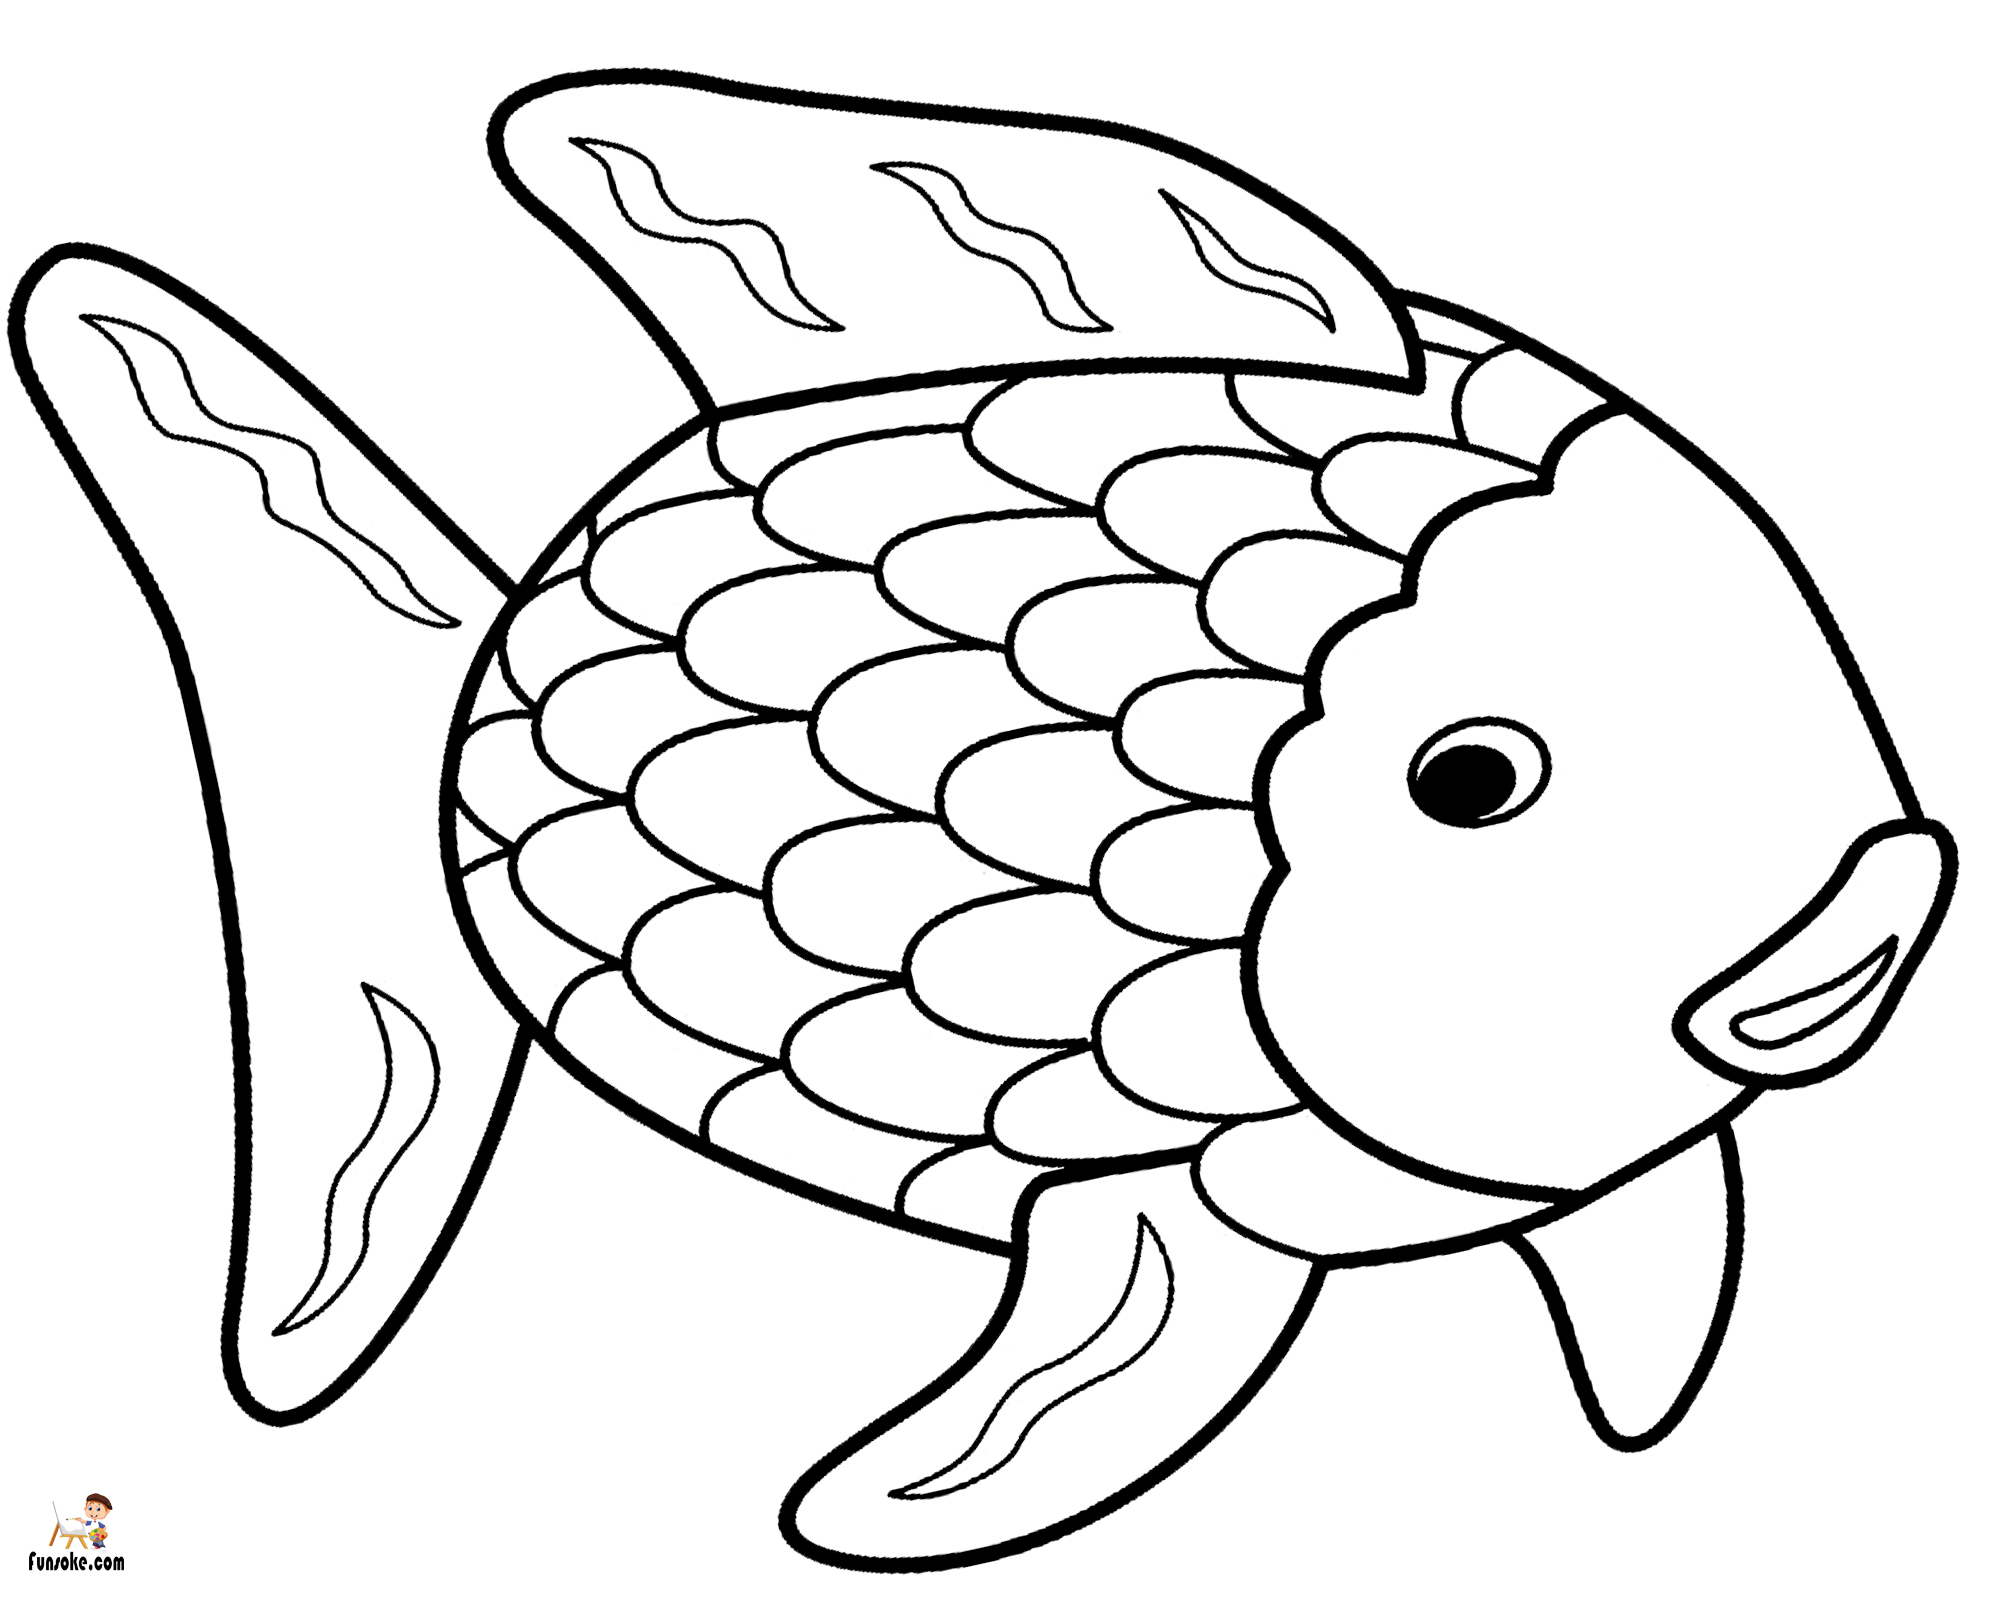 fish to color print download cute and educative fish coloring pages fish to color